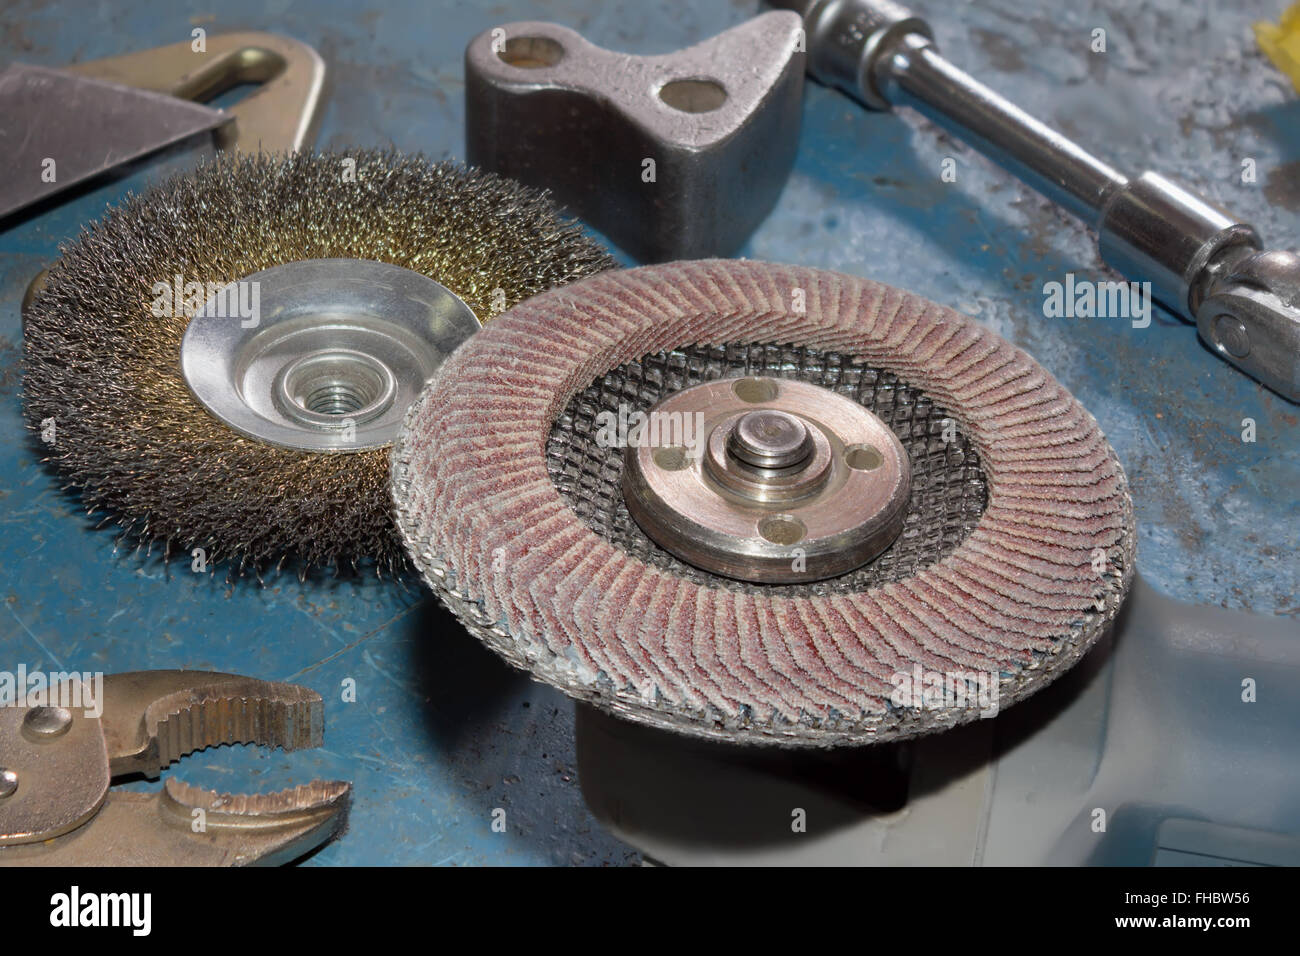 Angle grinder with wire brush for mechanical cleaning of metal and abrasive disk for grinder. - Stock Image